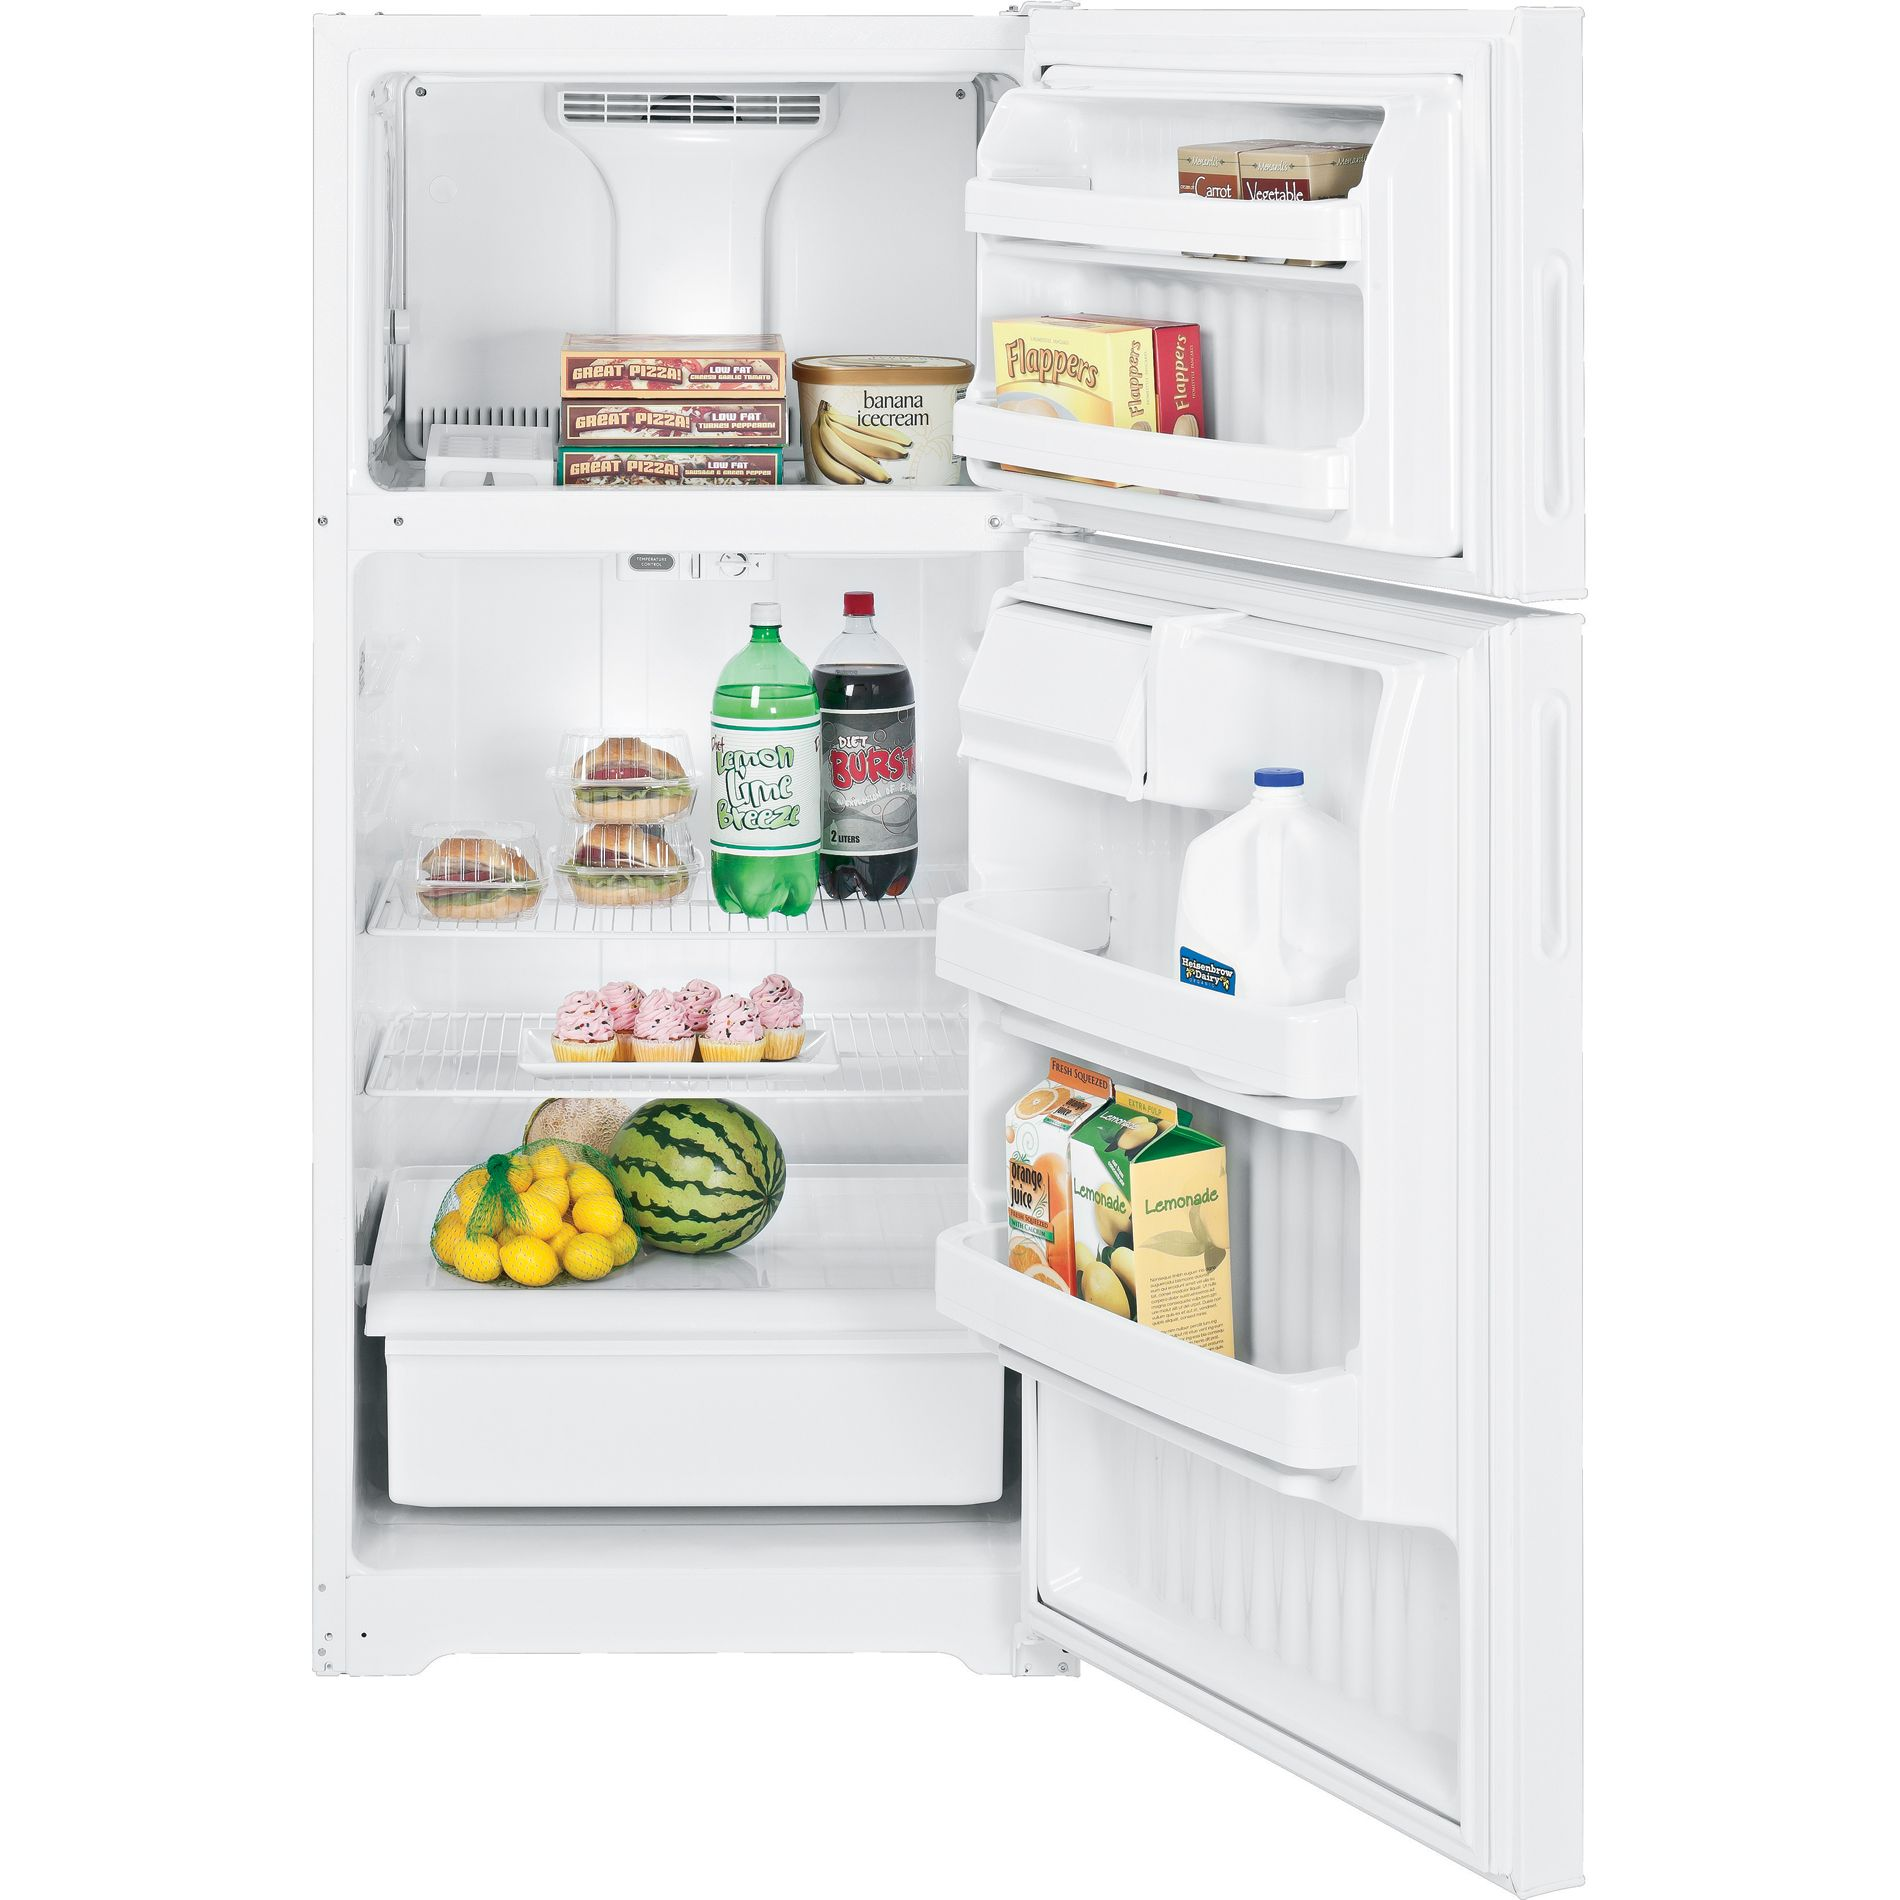 Hotpoint 15.6 cu. ft. Top Freezer Refrigerator - White